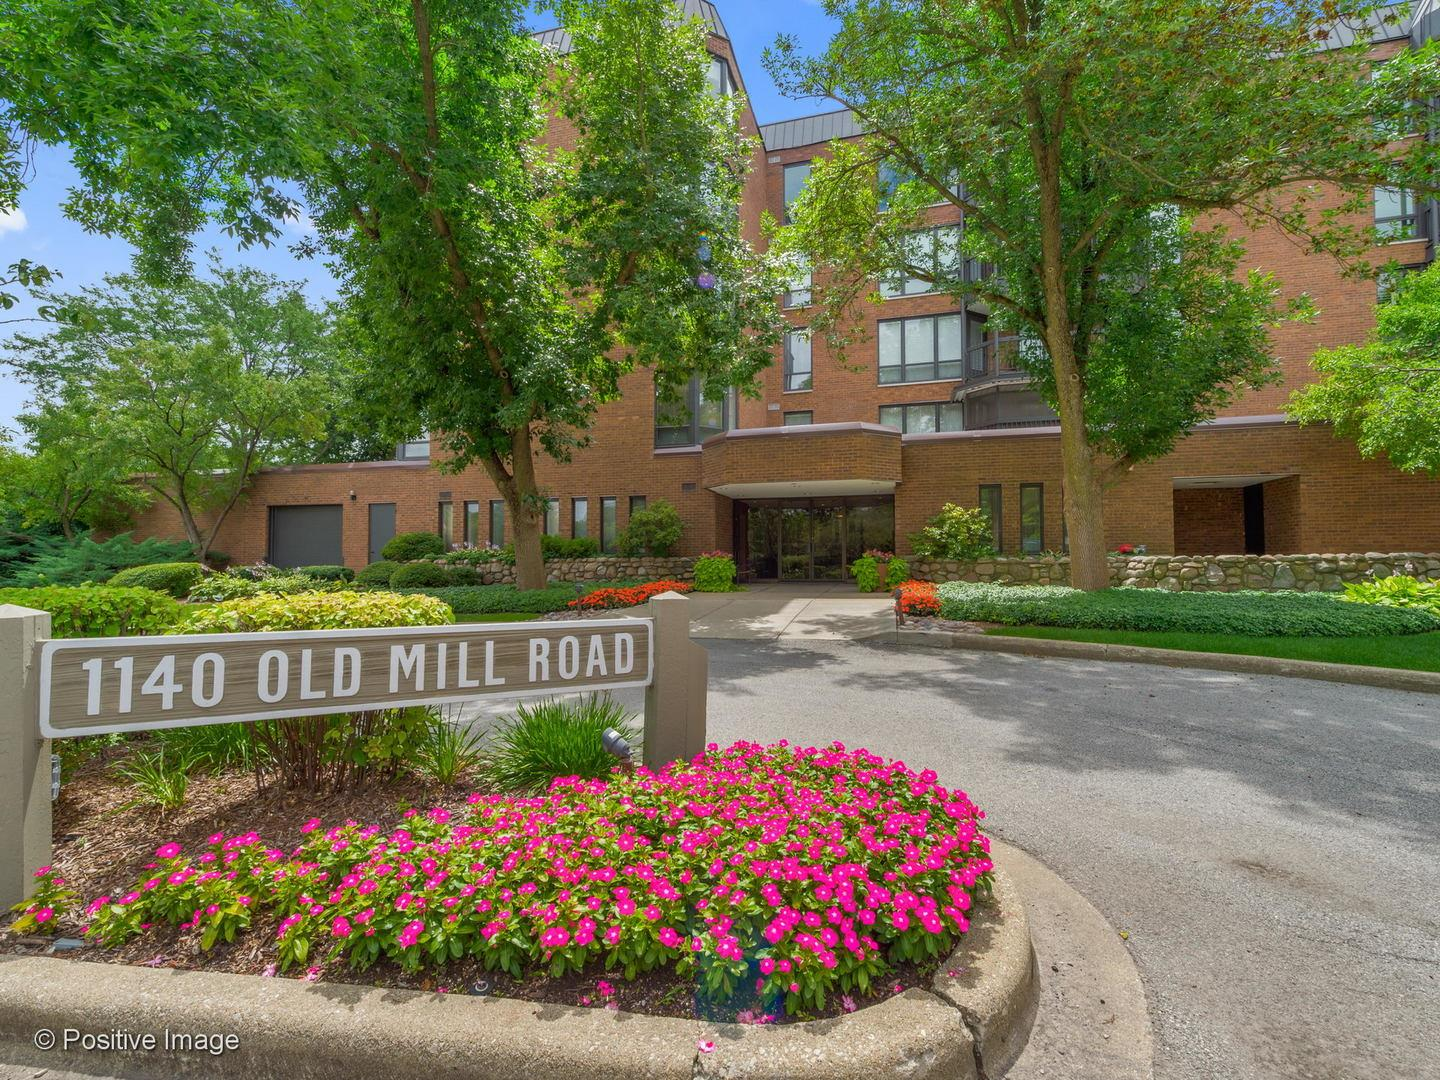 1140 Old Mill Road #404F, Hinsdale, IL 60521 - #: 10902165